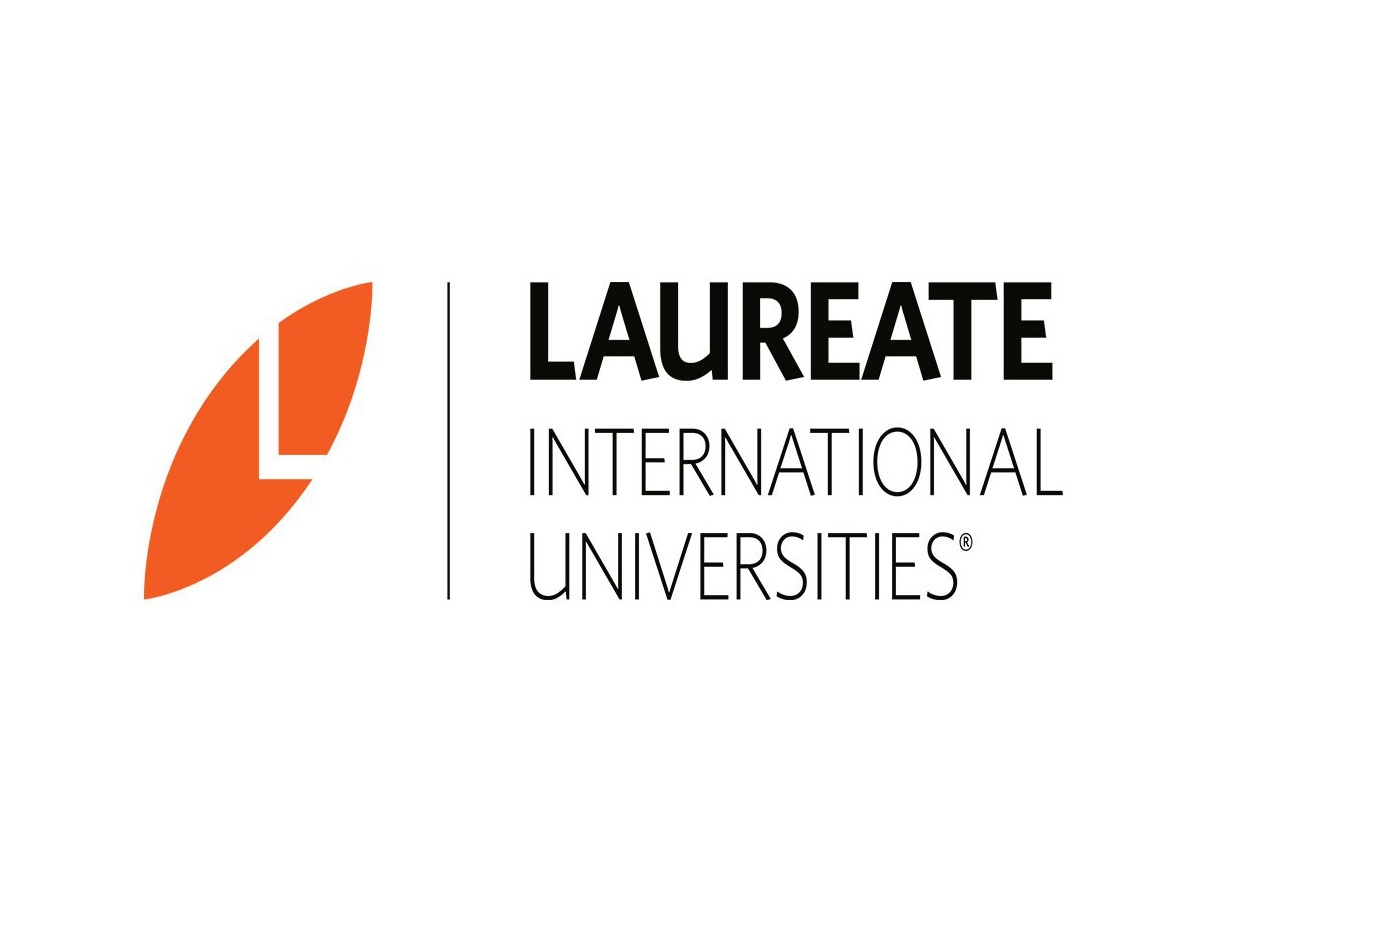 Laureate International Universities – Wunscharbeitgeber